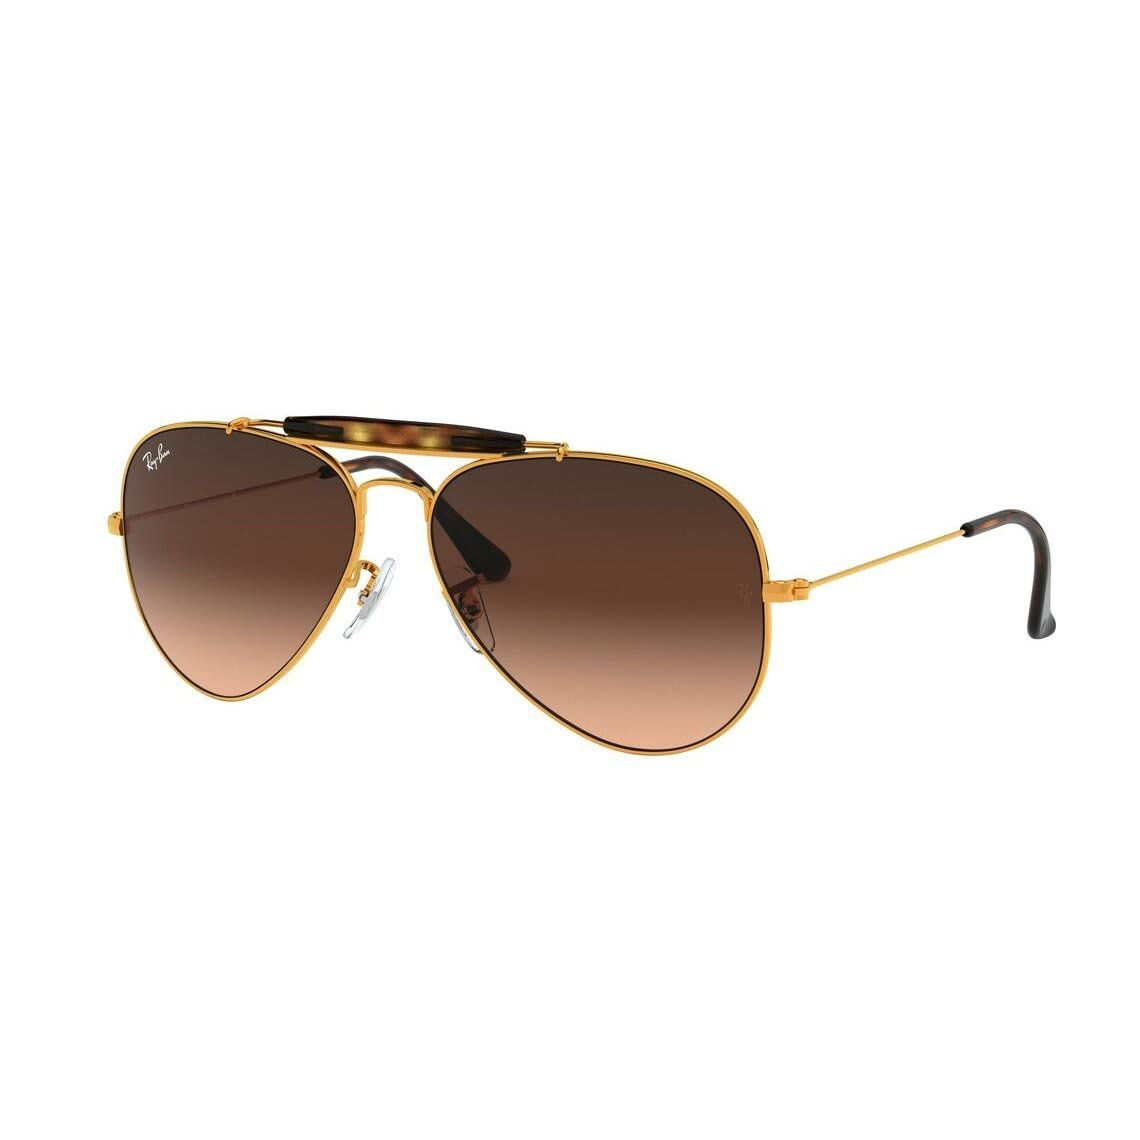 Ray-Ban Outdoorsman II RB3029 9001A5 62